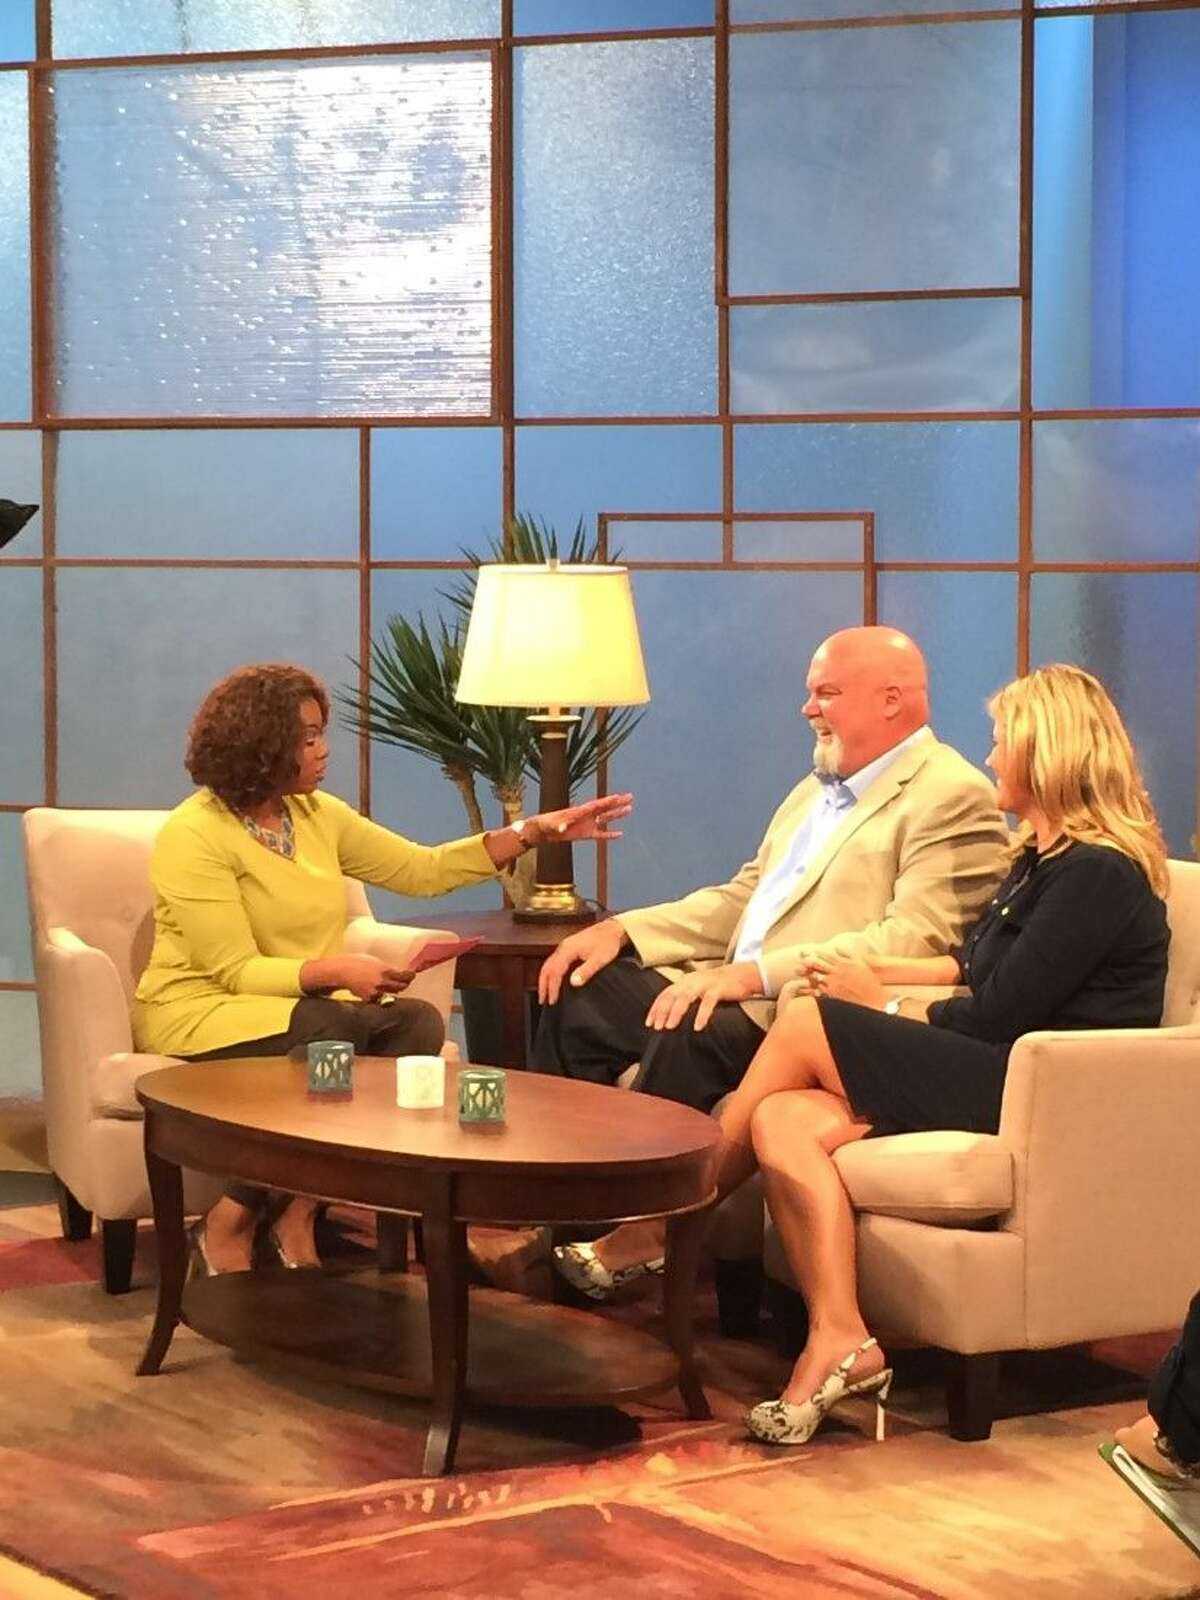 Bryan and Krista appeared on the Great Day Houston television show November 3, 2014 to talk about their decision to choose hospice care.